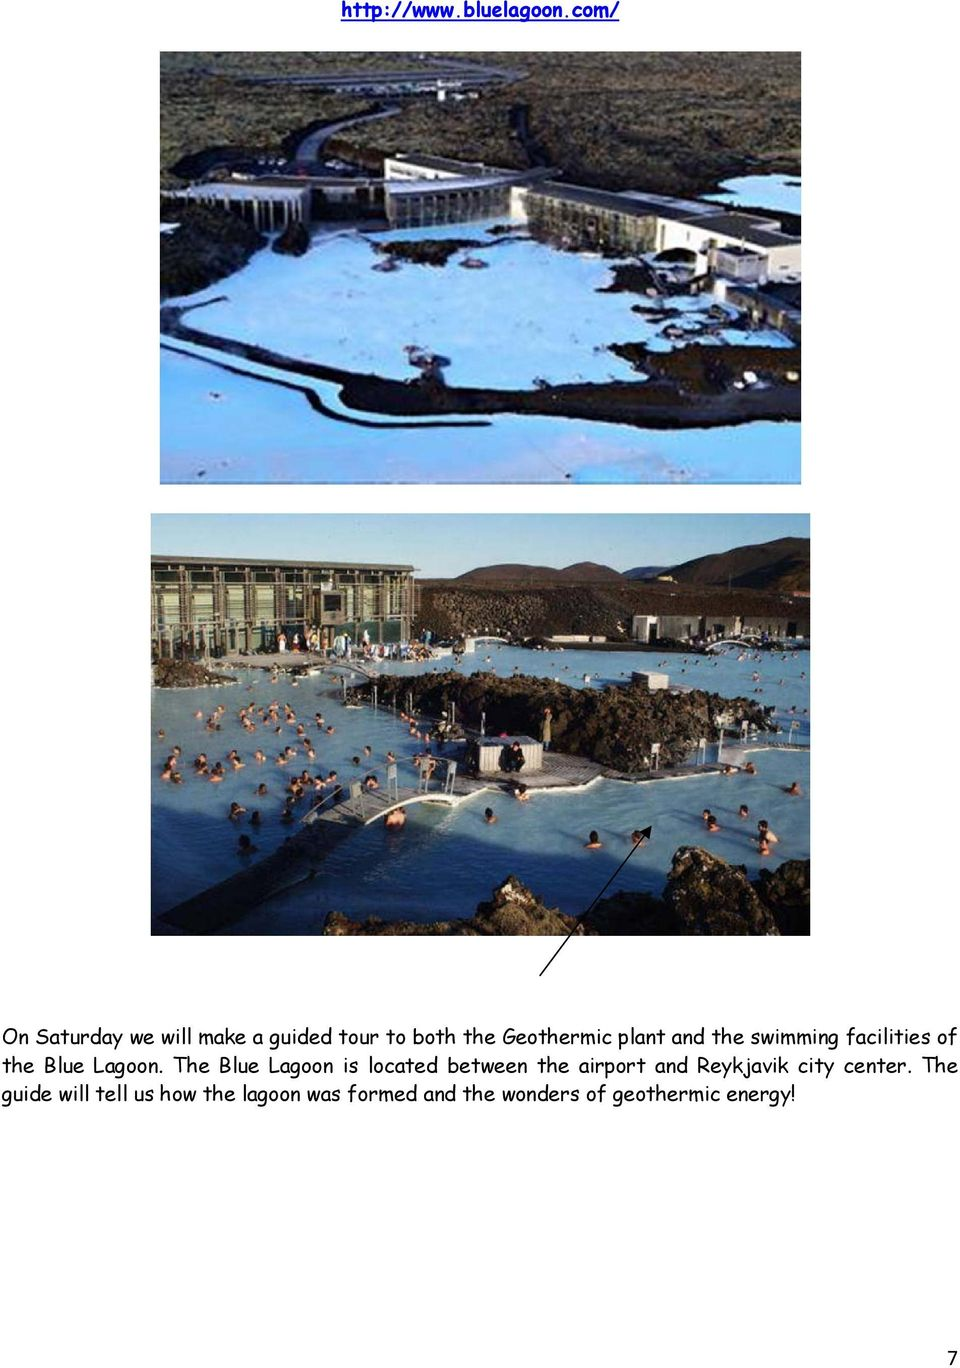 the swimming facilities of the Blue Lagoon.